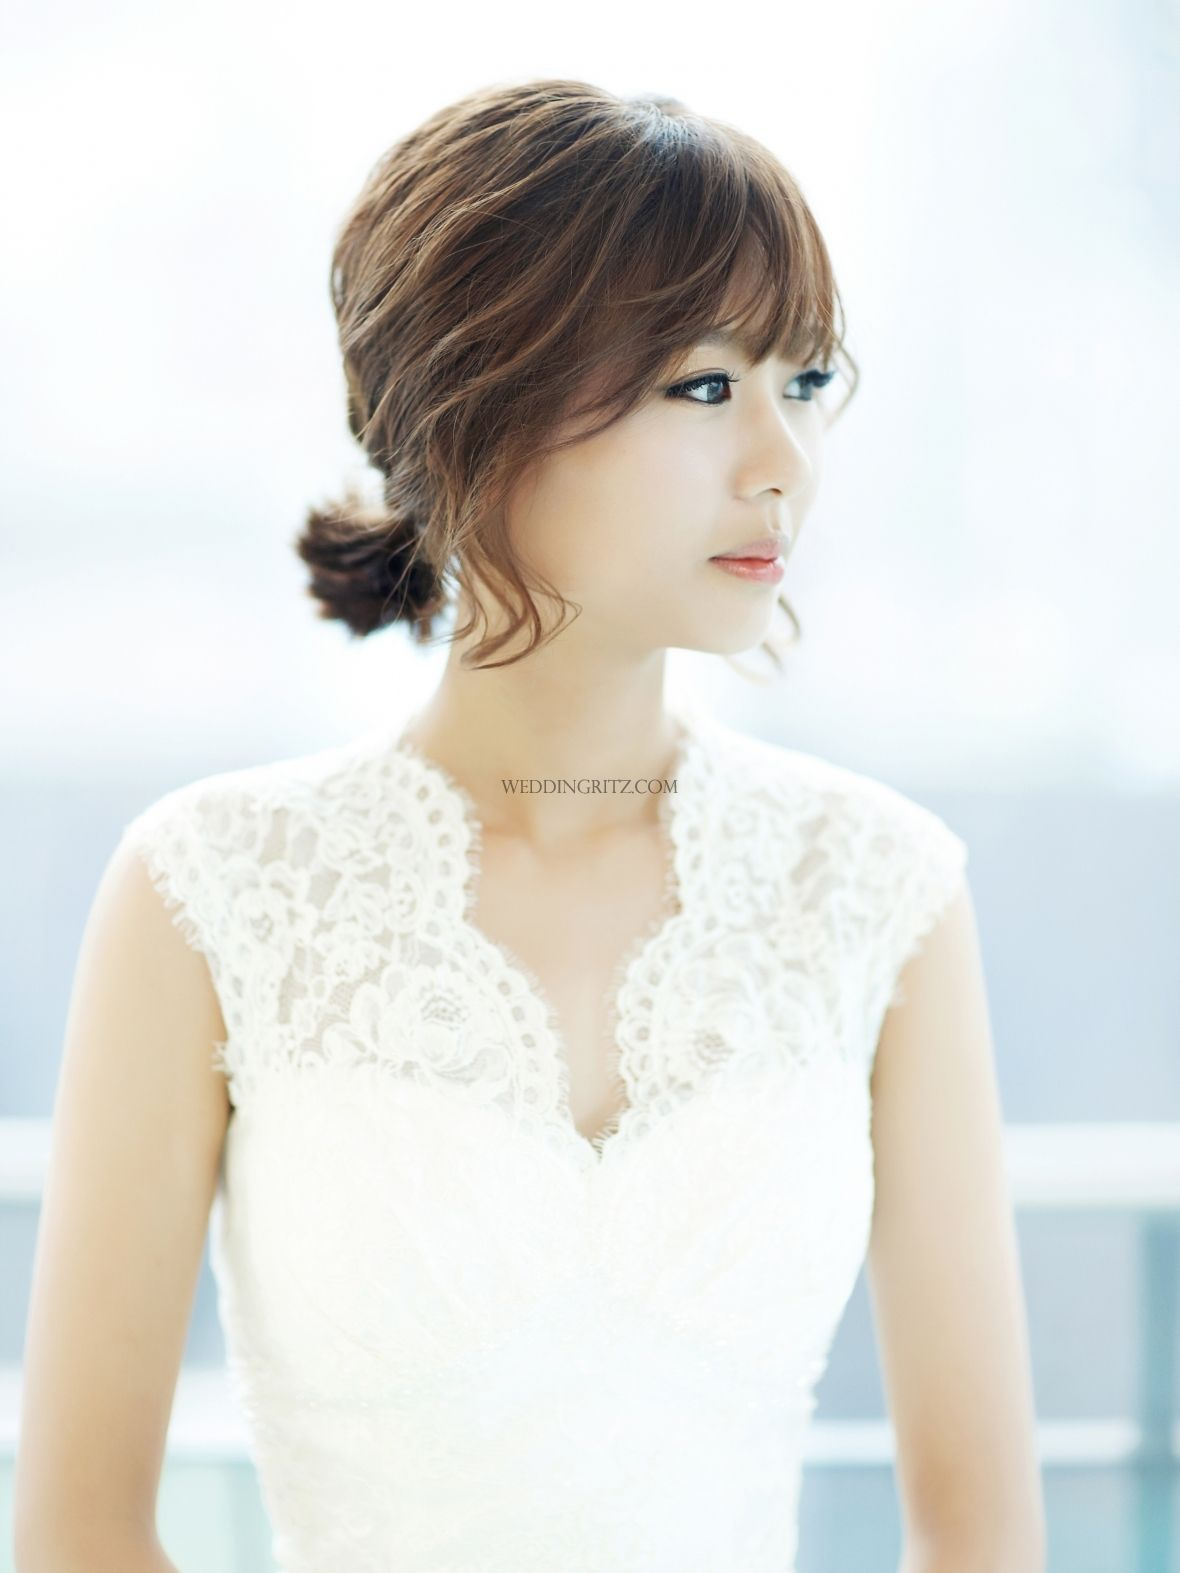 Beautiful gyuniyoung in korea hair u makeup sample hair bobs